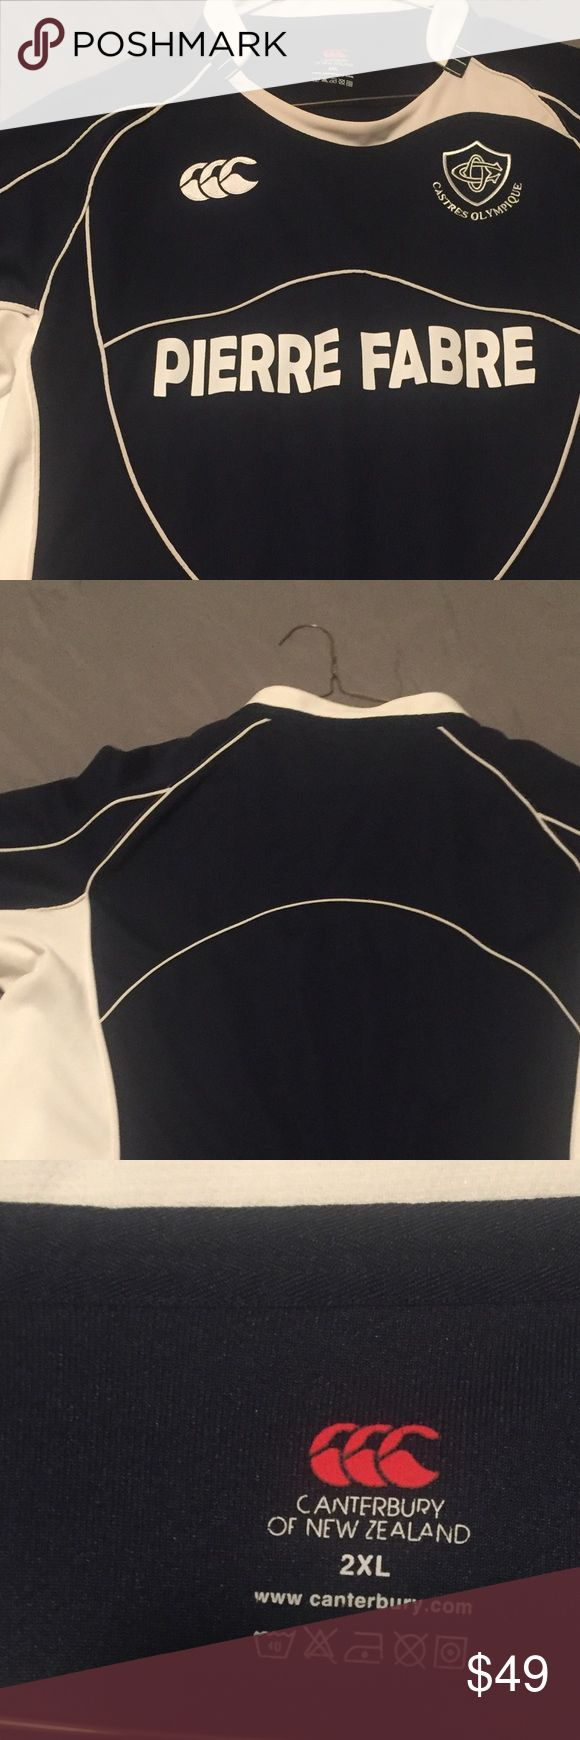 French Rugby Jersey Canterbury made Rugby Jersey for the Castres Olympique Team in The French Rugby Union Canterbury Other